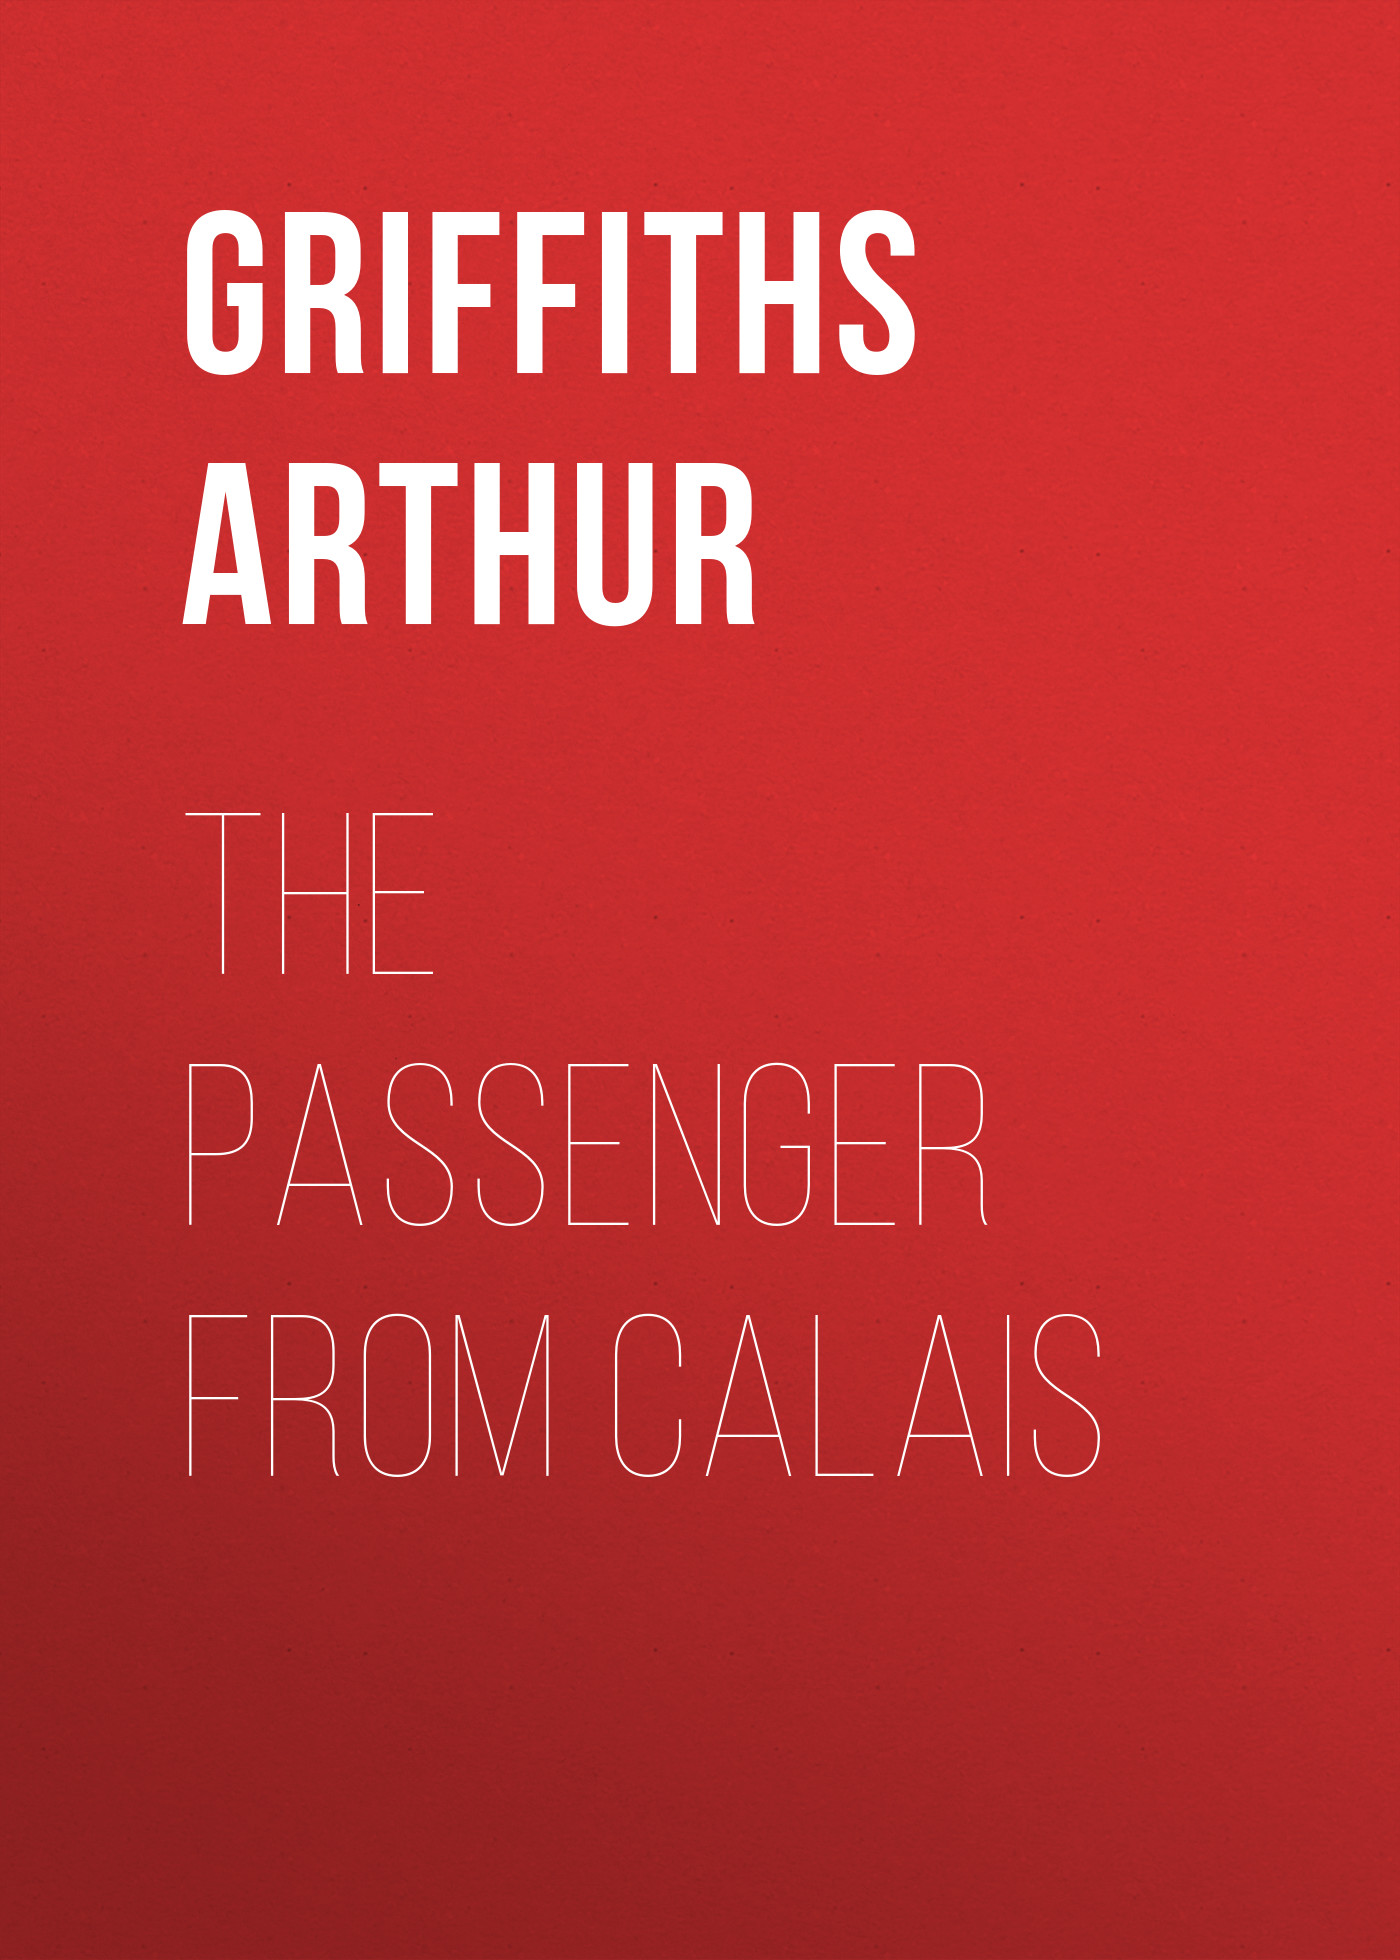 Griffiths Arthur The Passenger from Calais griffiths arthur the queen s shilling